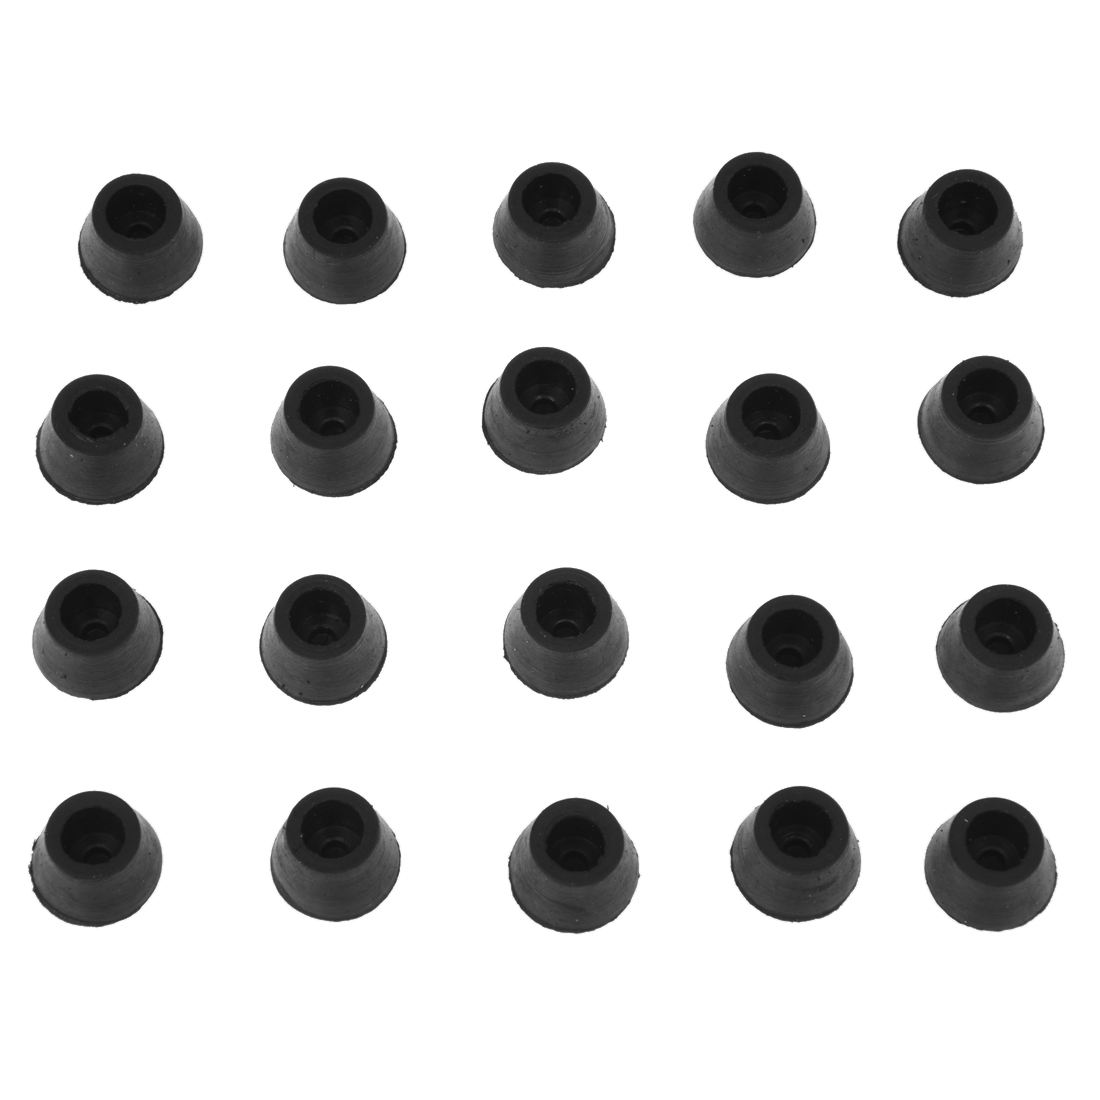 20PCS Black Chair Couch Table Rubber Furniture Leg End Caps 16mm Dia20PCS Black Chair Couch Table Rubber Furniture Leg End Caps 16mm Dia